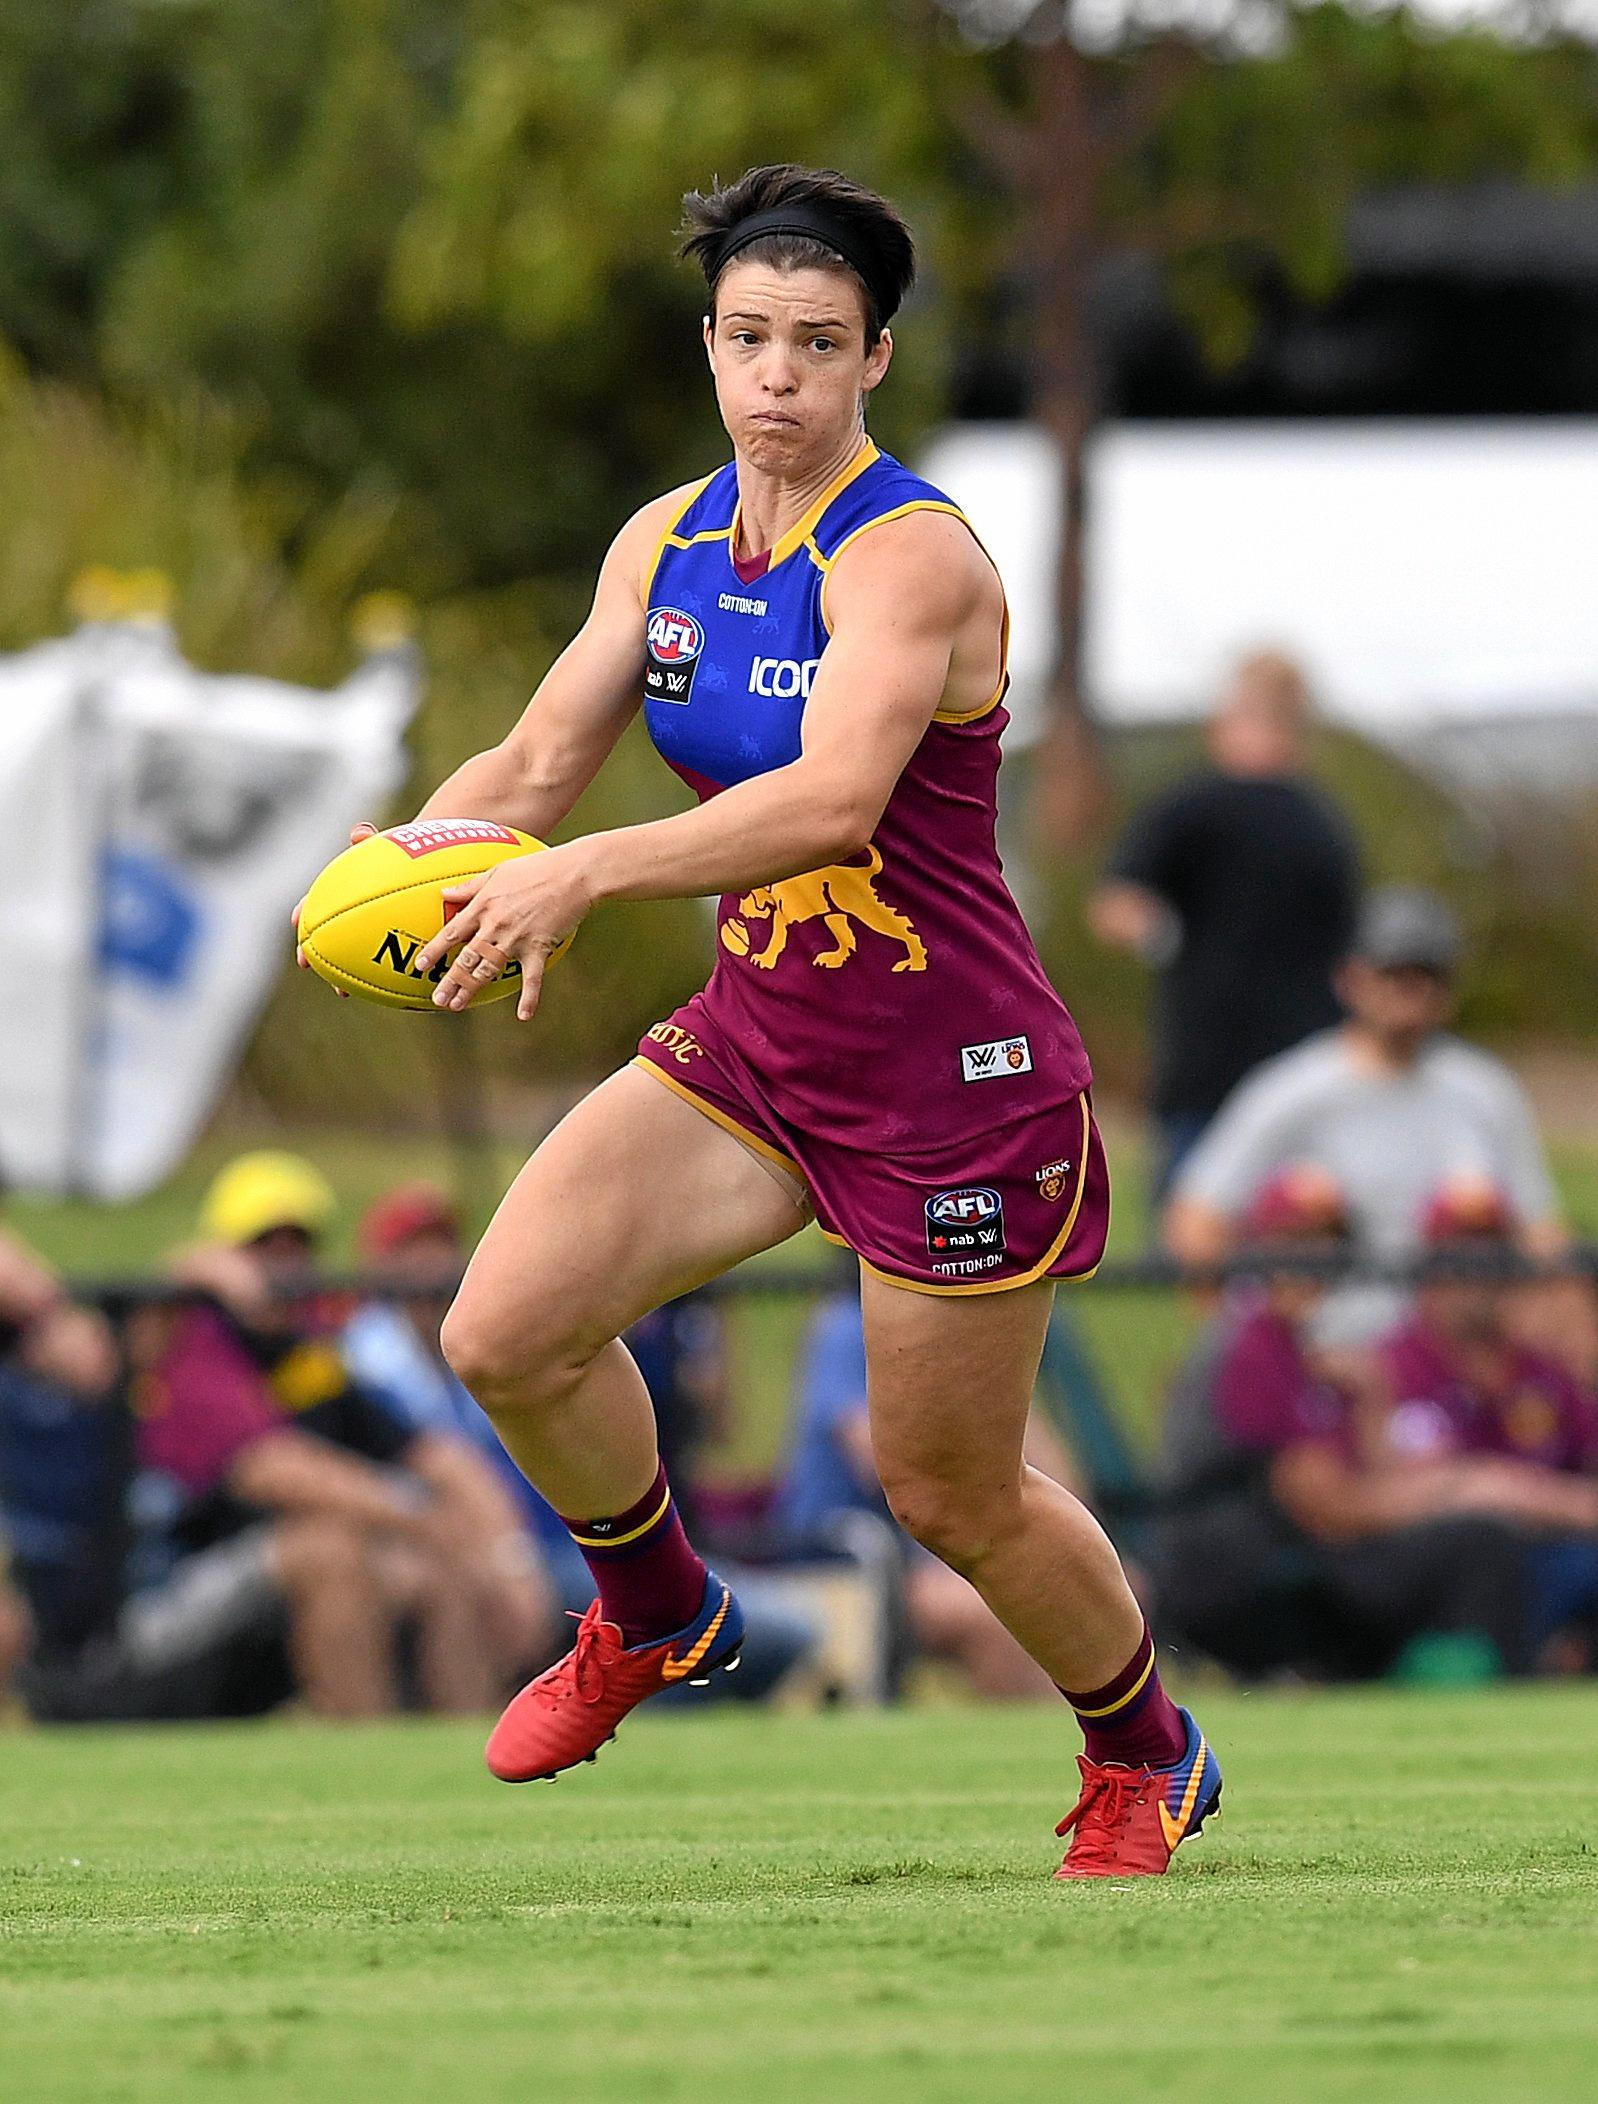 Former Brisbane Lion Sam Virgo will play for the Gold Coast Suns in their inaugural AFLW campaign in 2020.